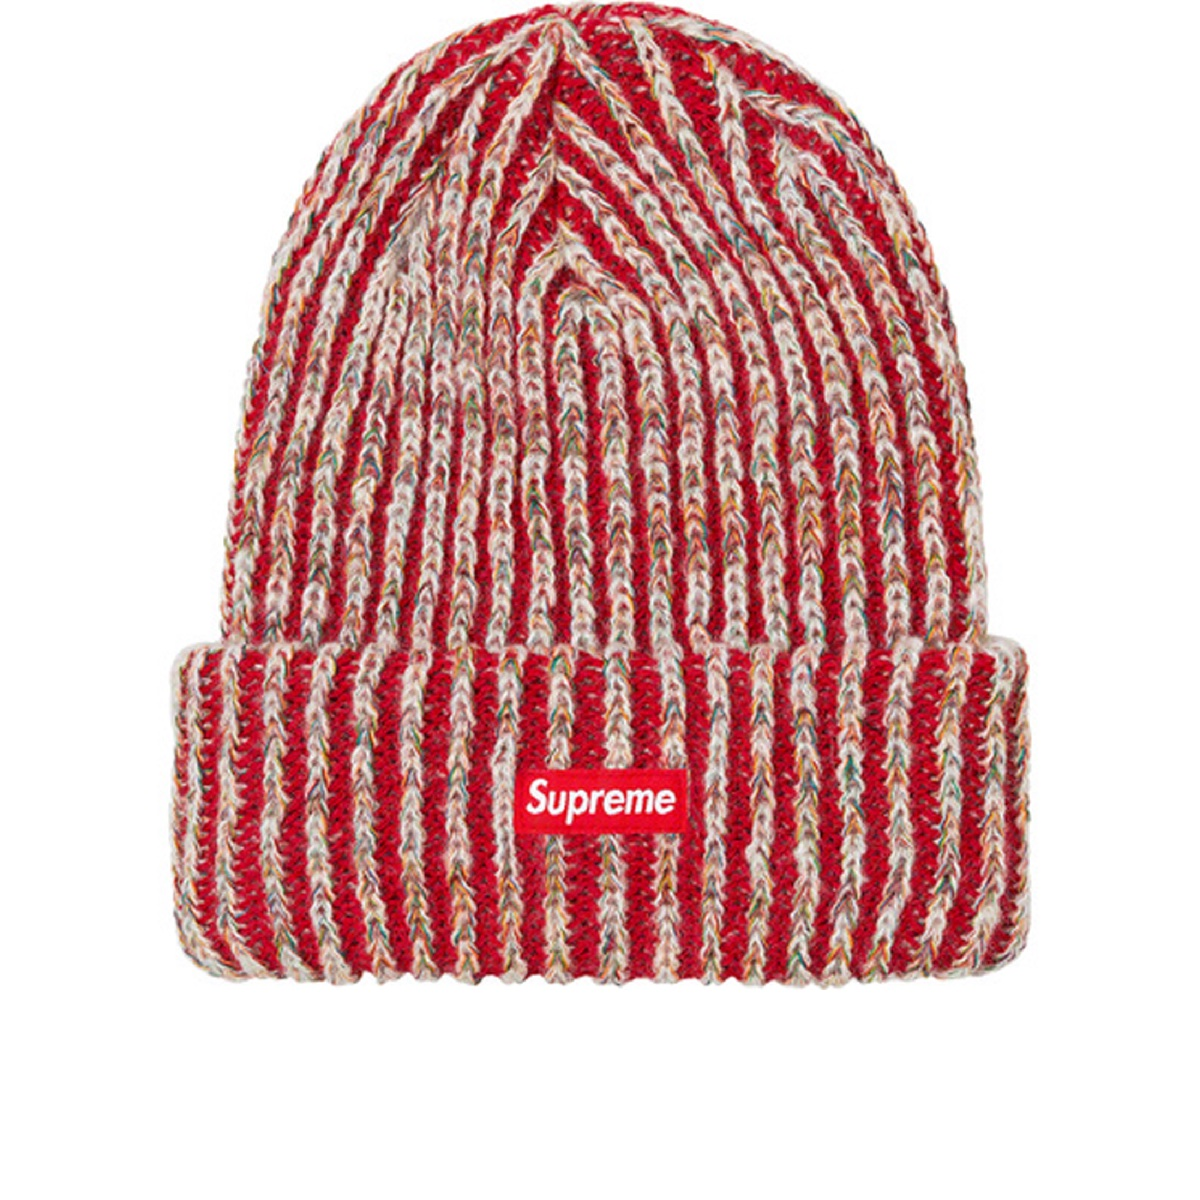 Supreme Rainbow Knit Loose Gauge Beanie Red